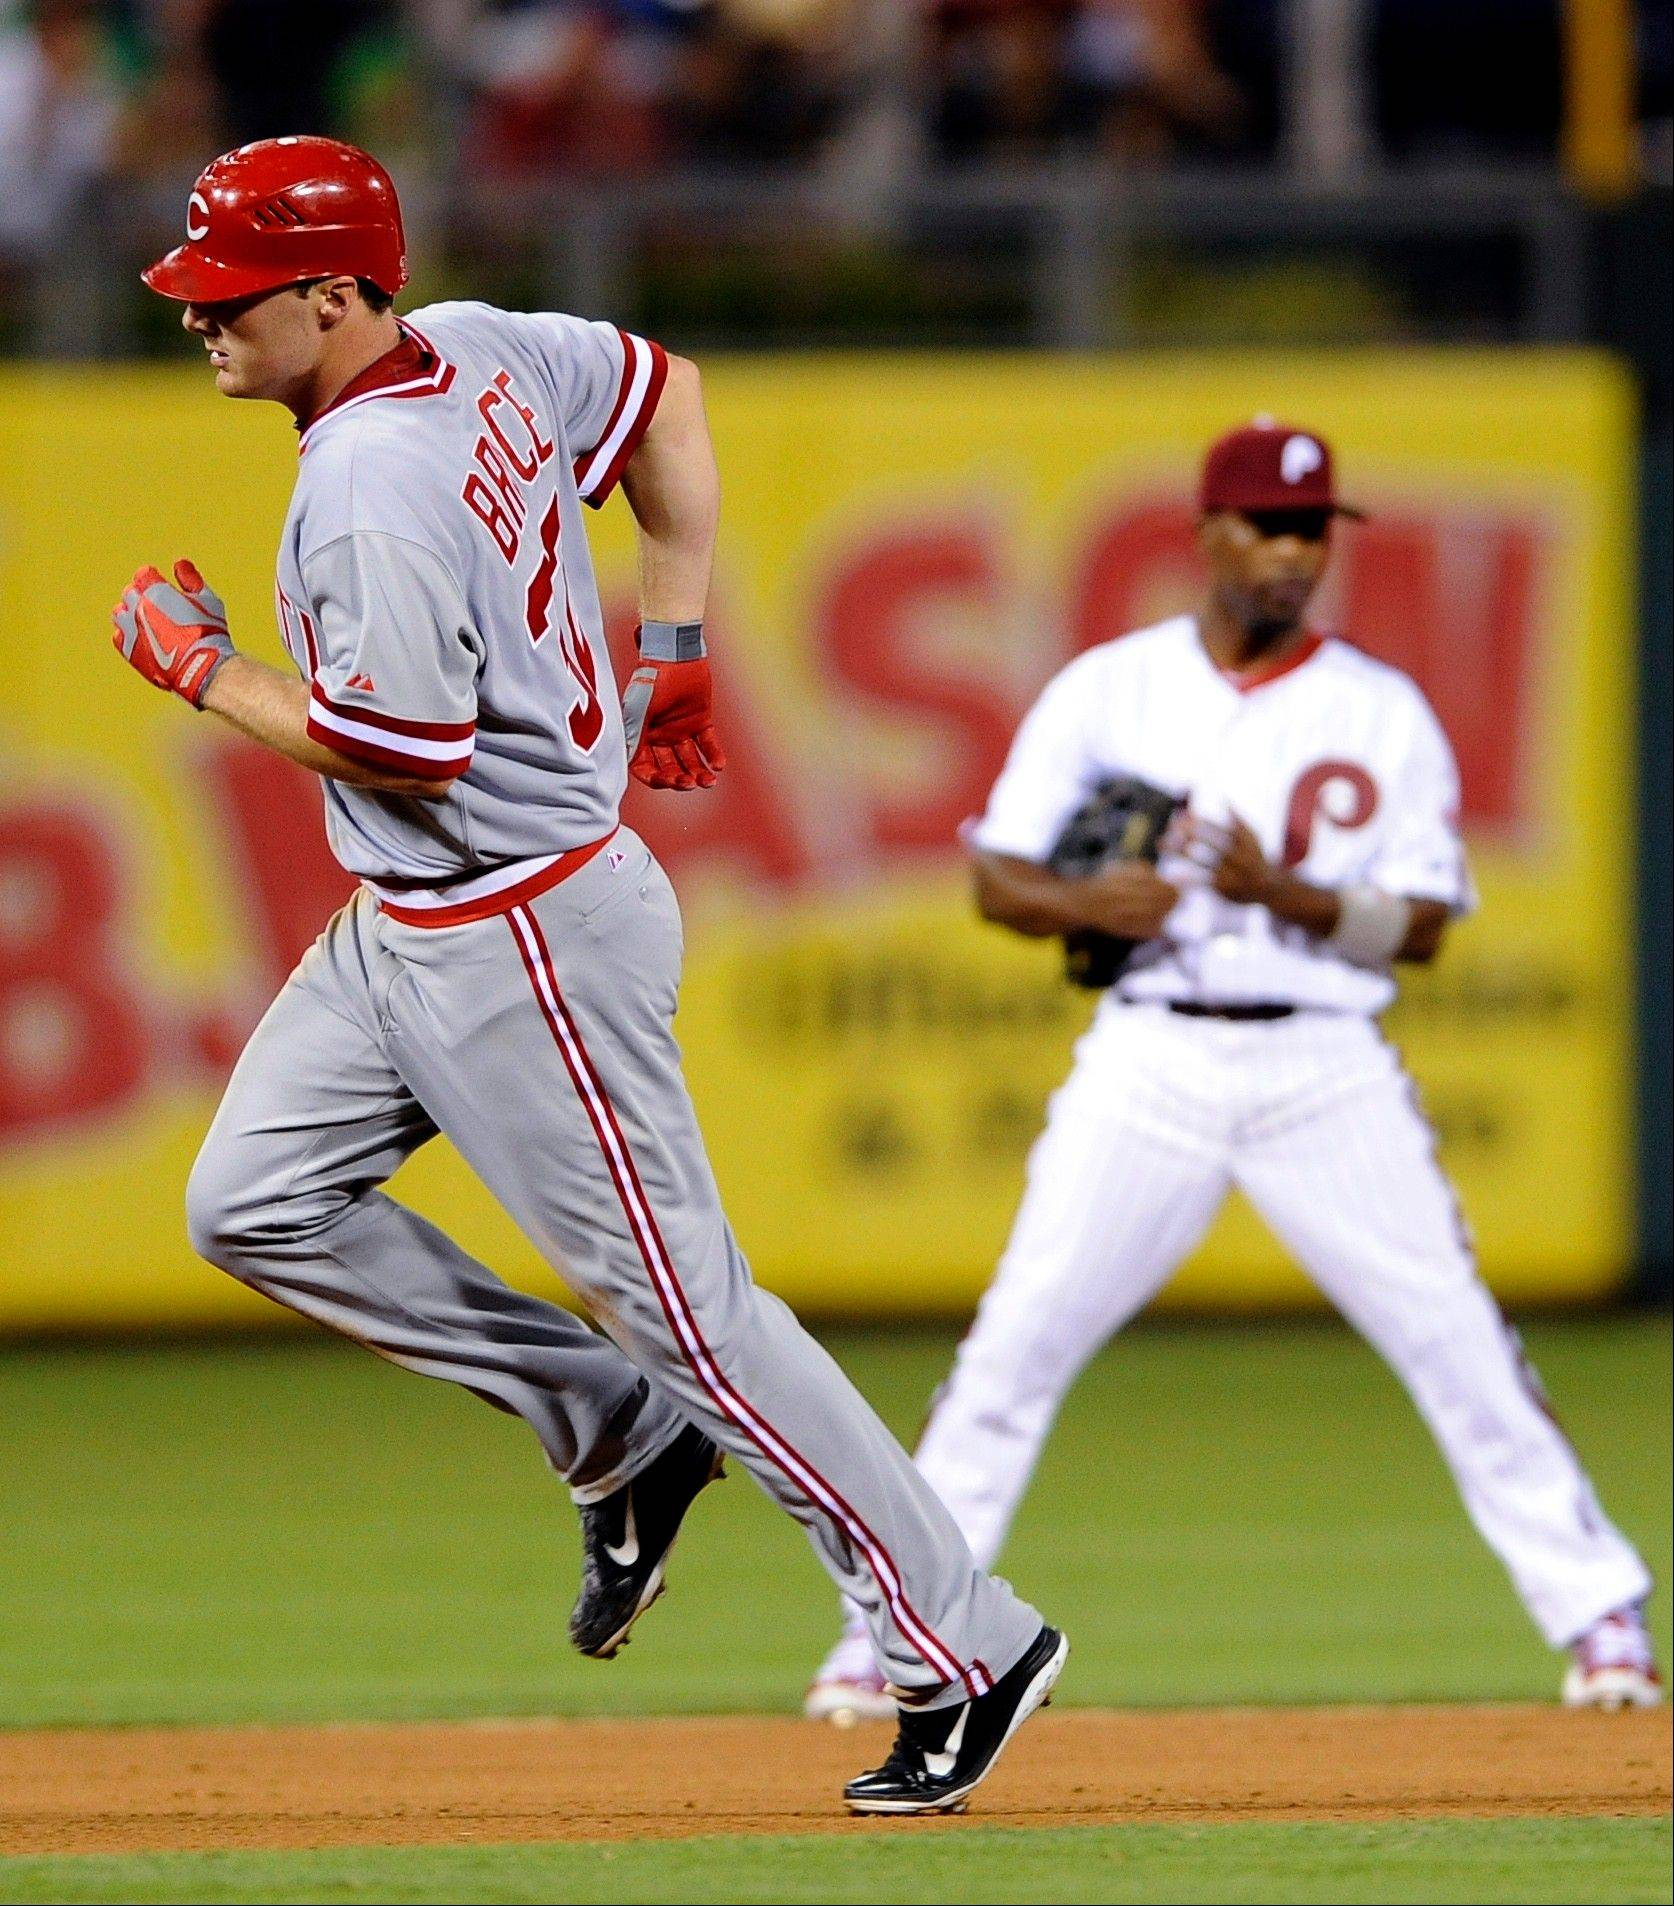 The Reds' Jay Bruce runs past the Phillies' Jimmy Rollins after hitting a home run in the eighth inning Wednesday in Philadelphia.